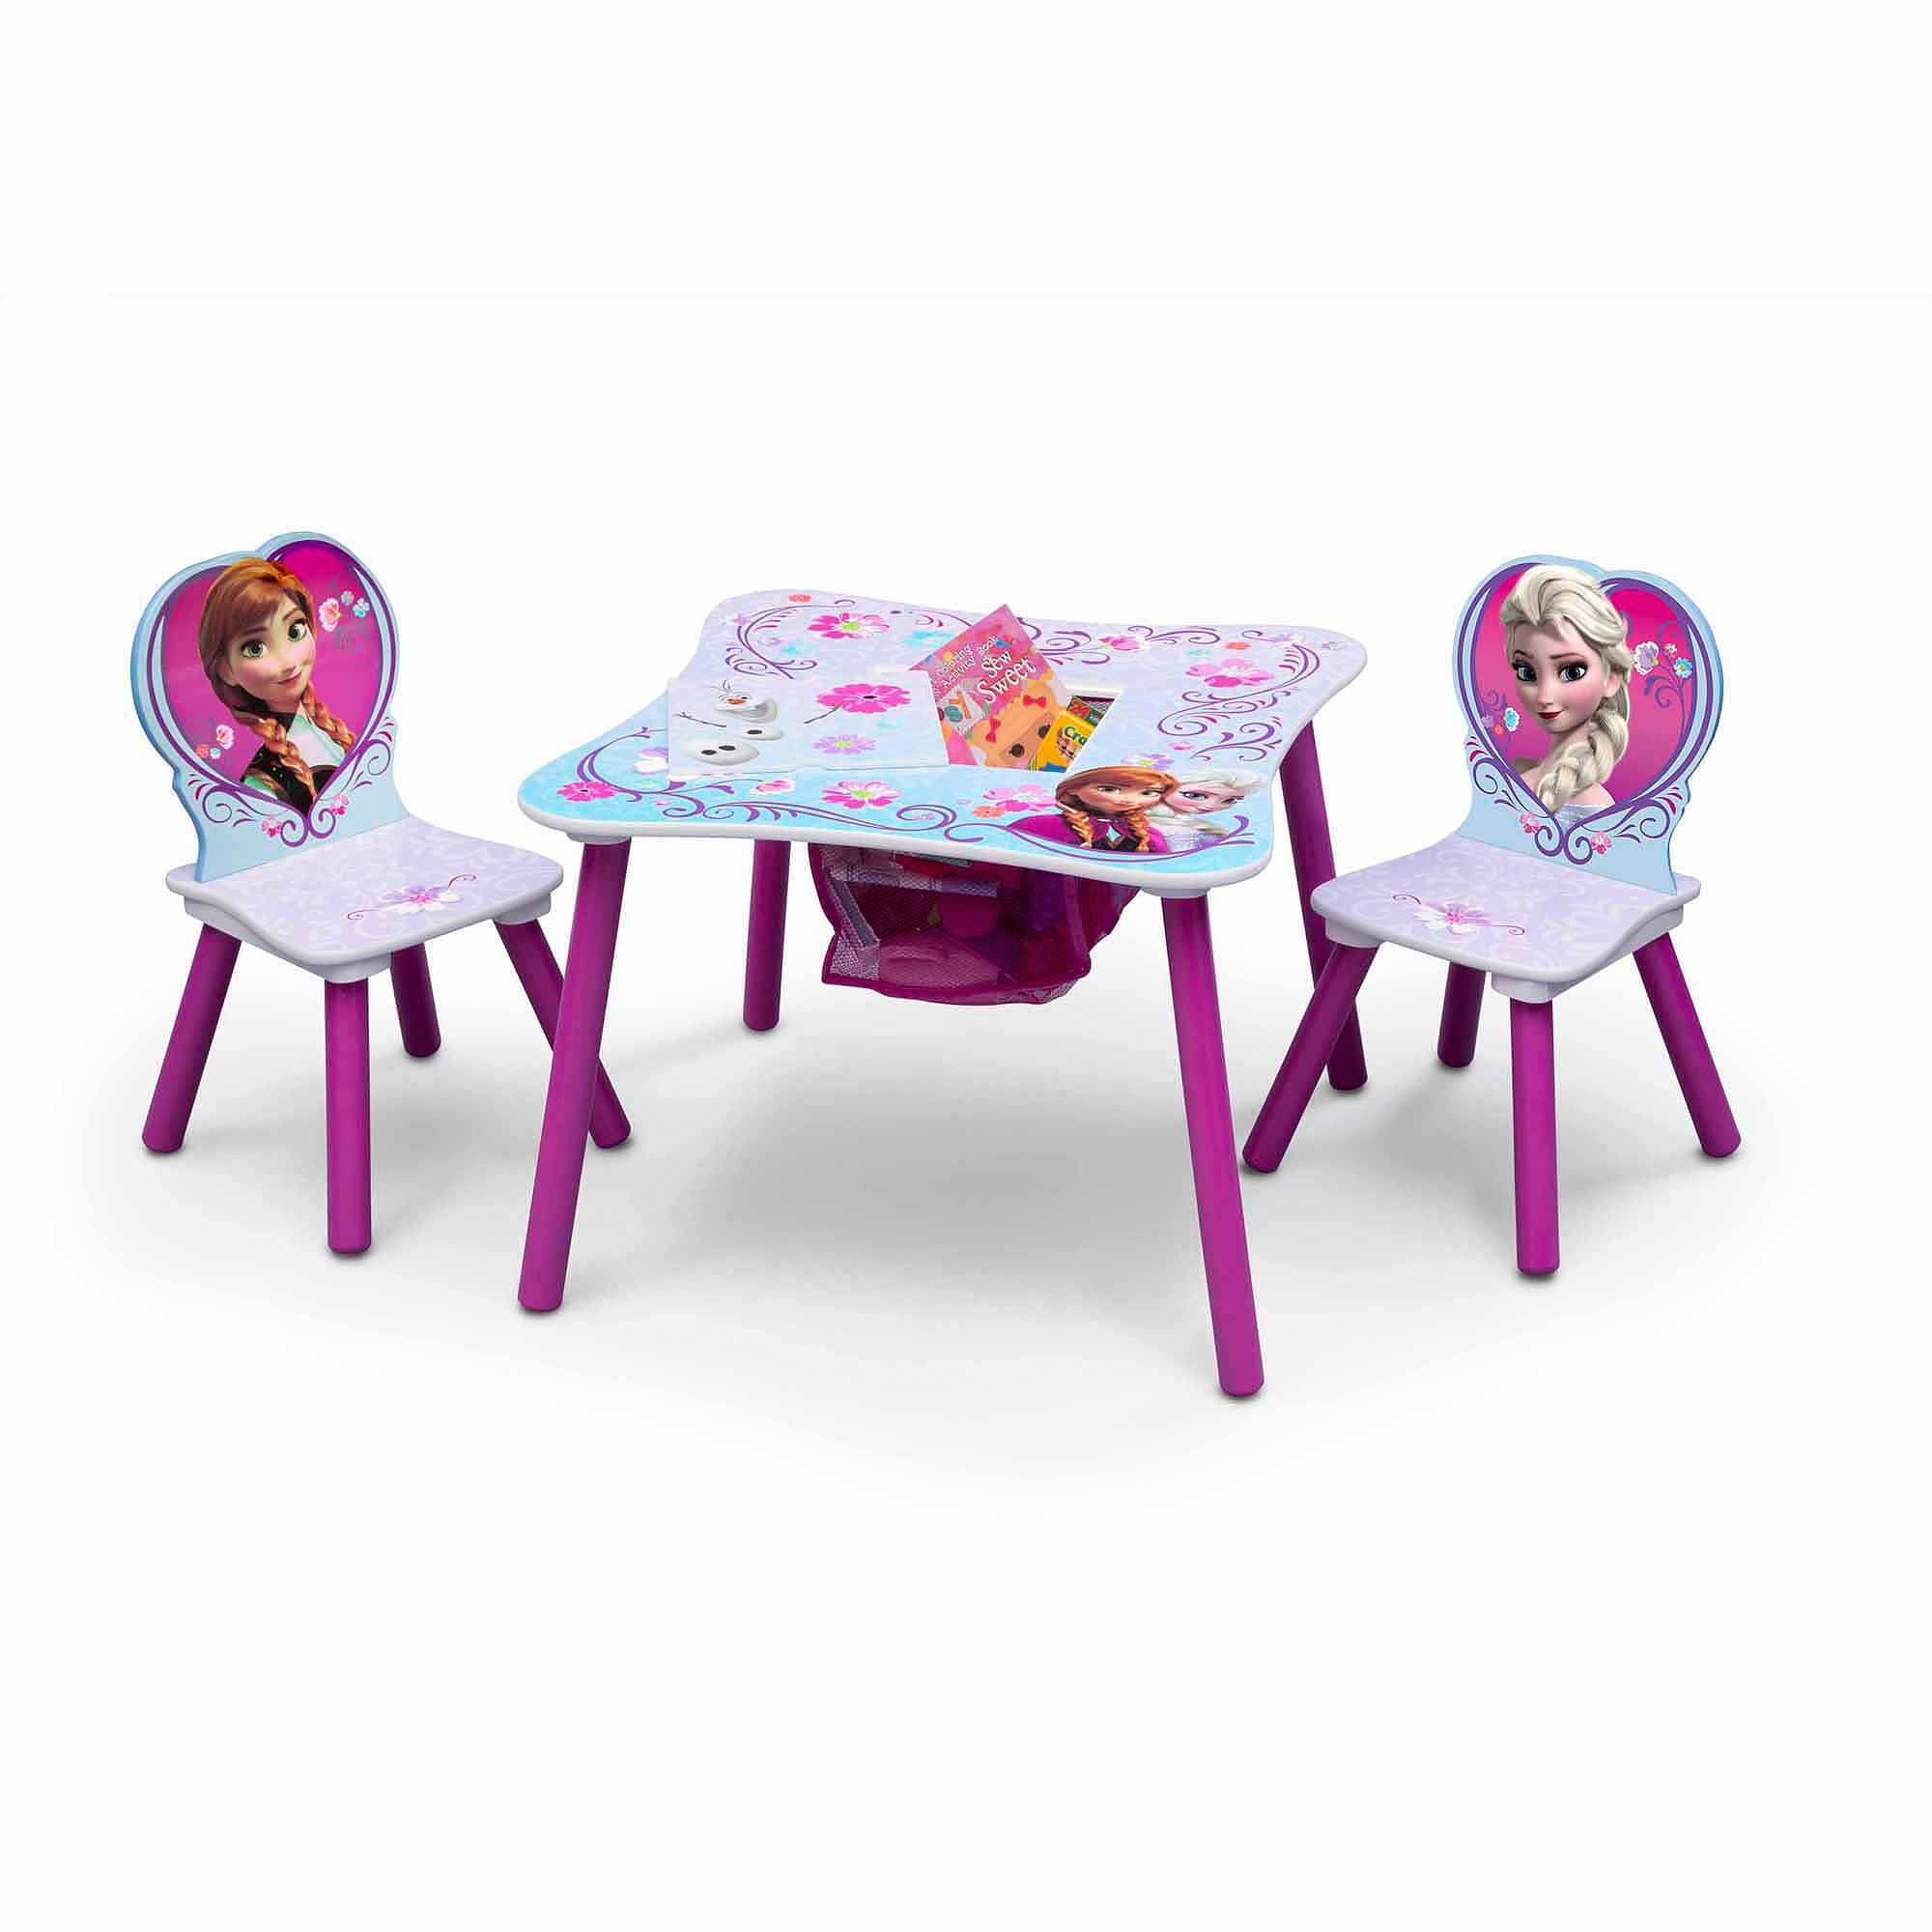 Disney Frozen Table and Chair Set with Storage by TT89494FZ (Image #1)